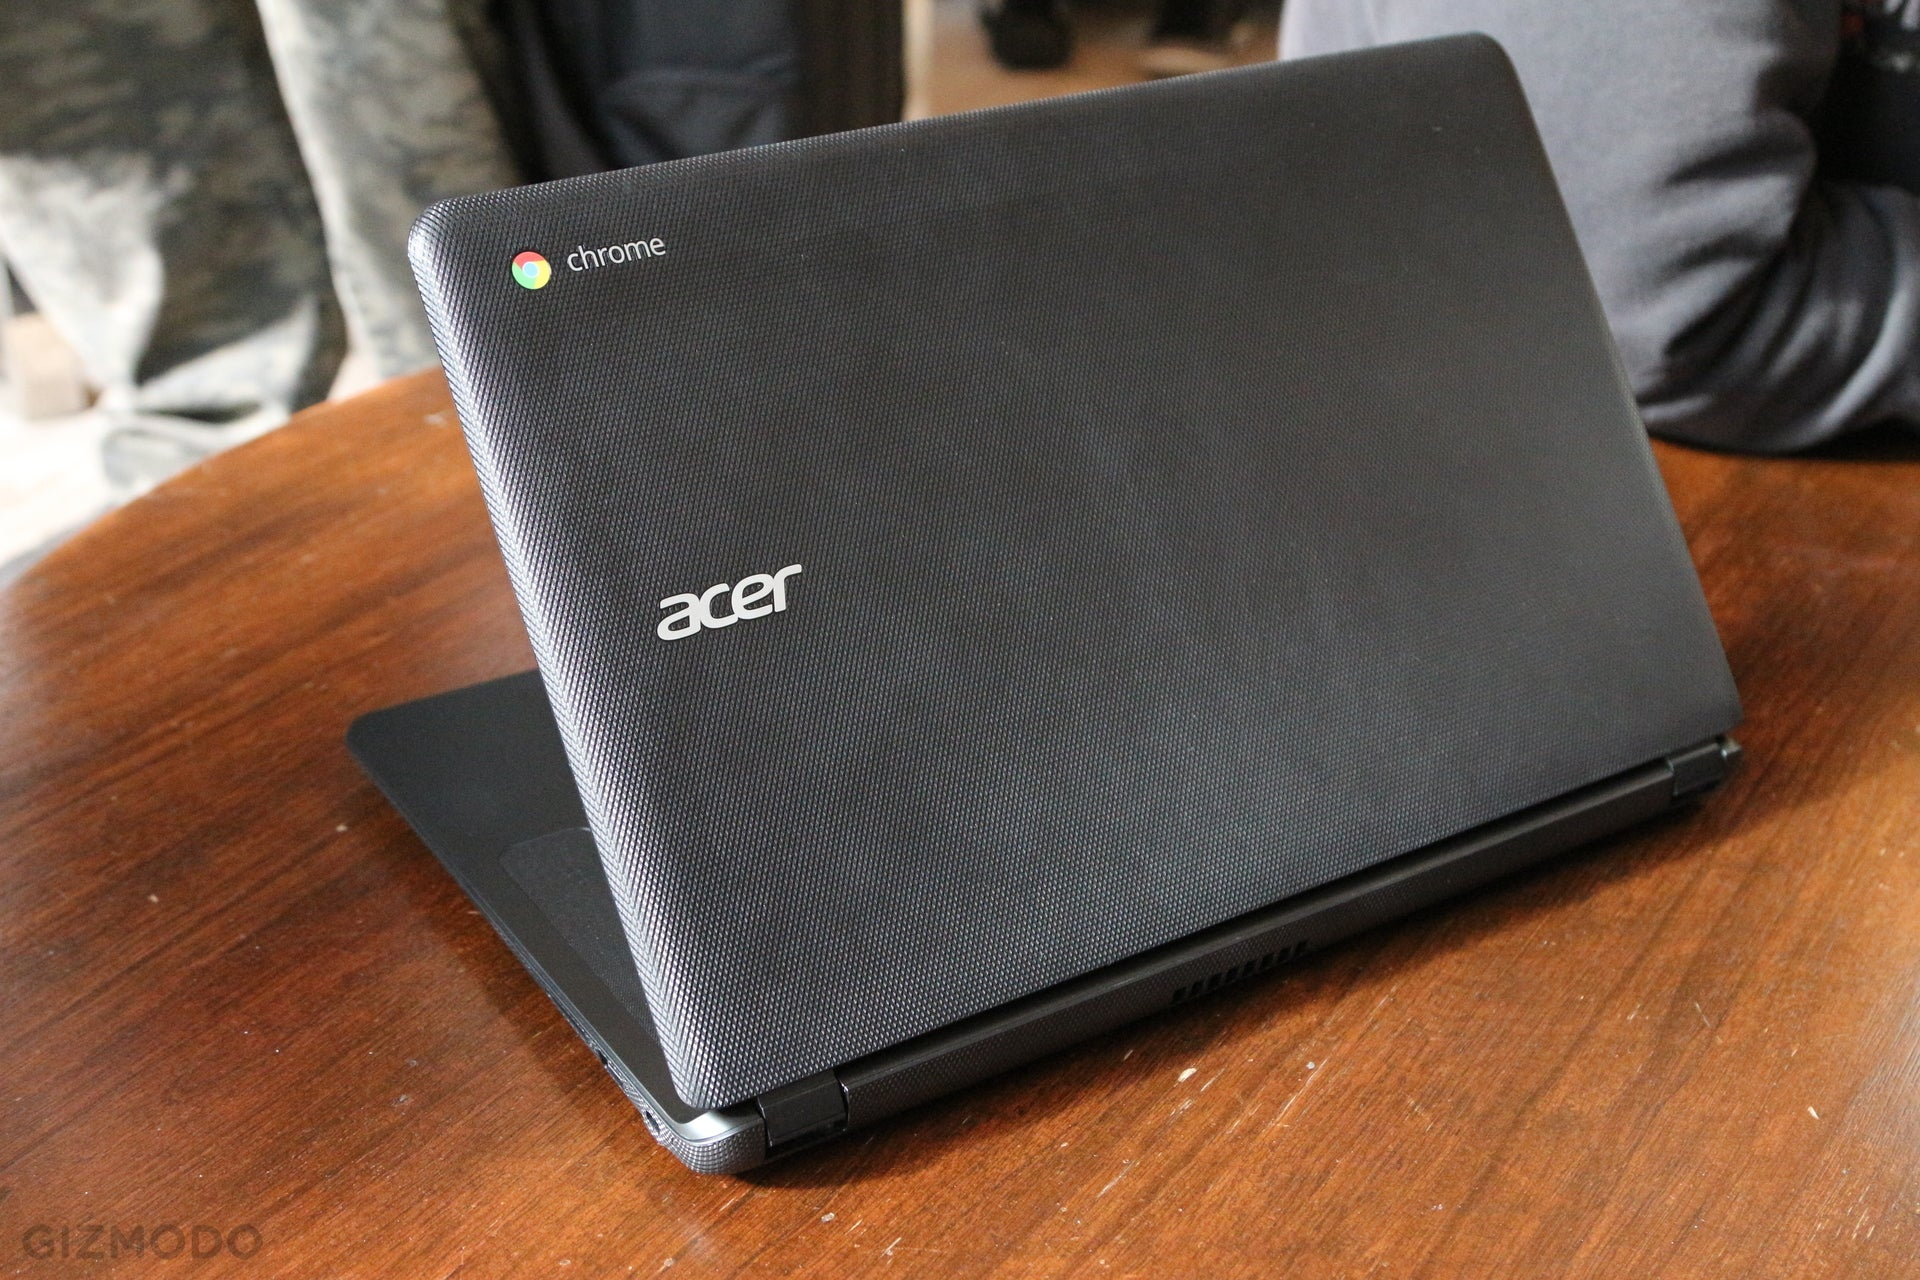 Acer Chromebook 15 Hands-On: Super Solid Big Screen Browsing For $US250